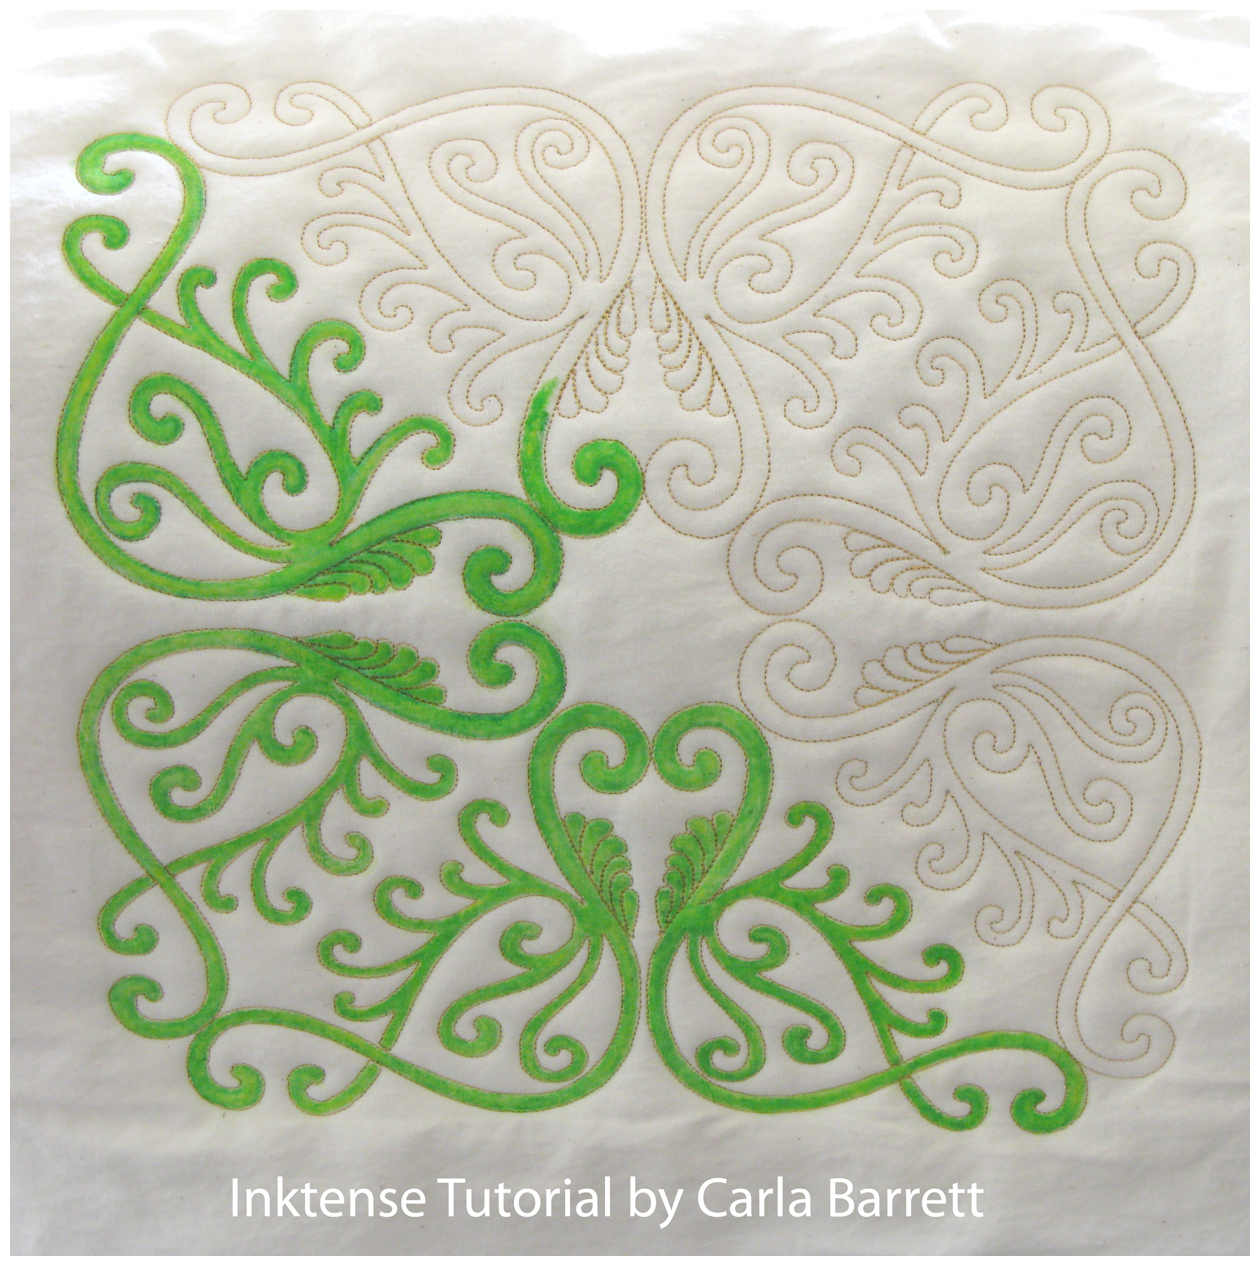 Inktense Fabric Paint Tutorial This Project Is Easy